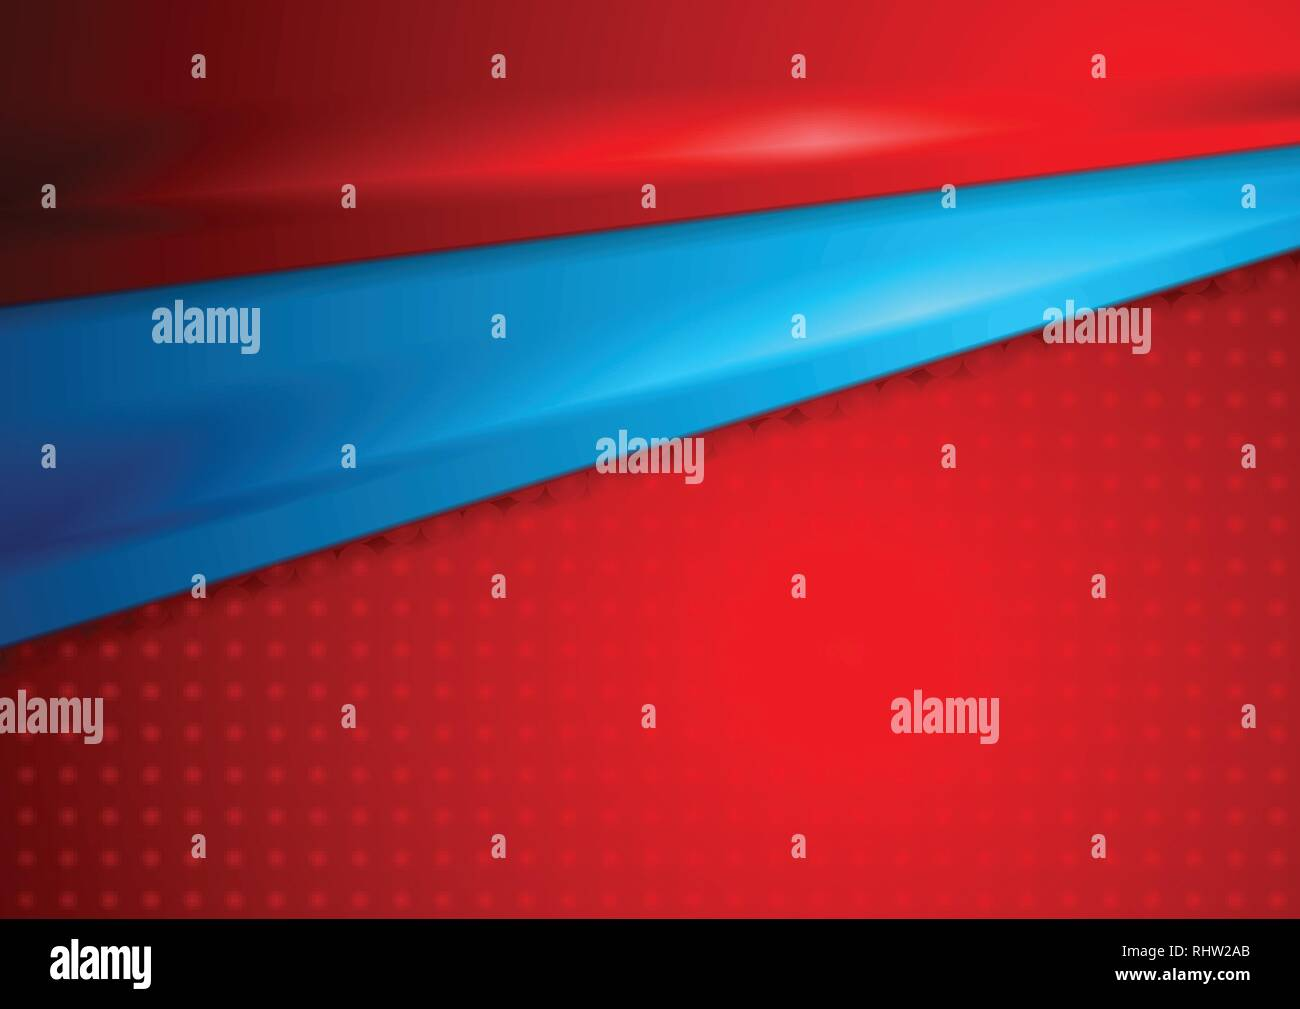 Bright Red And Blue Elegant Abstract Smooth Background